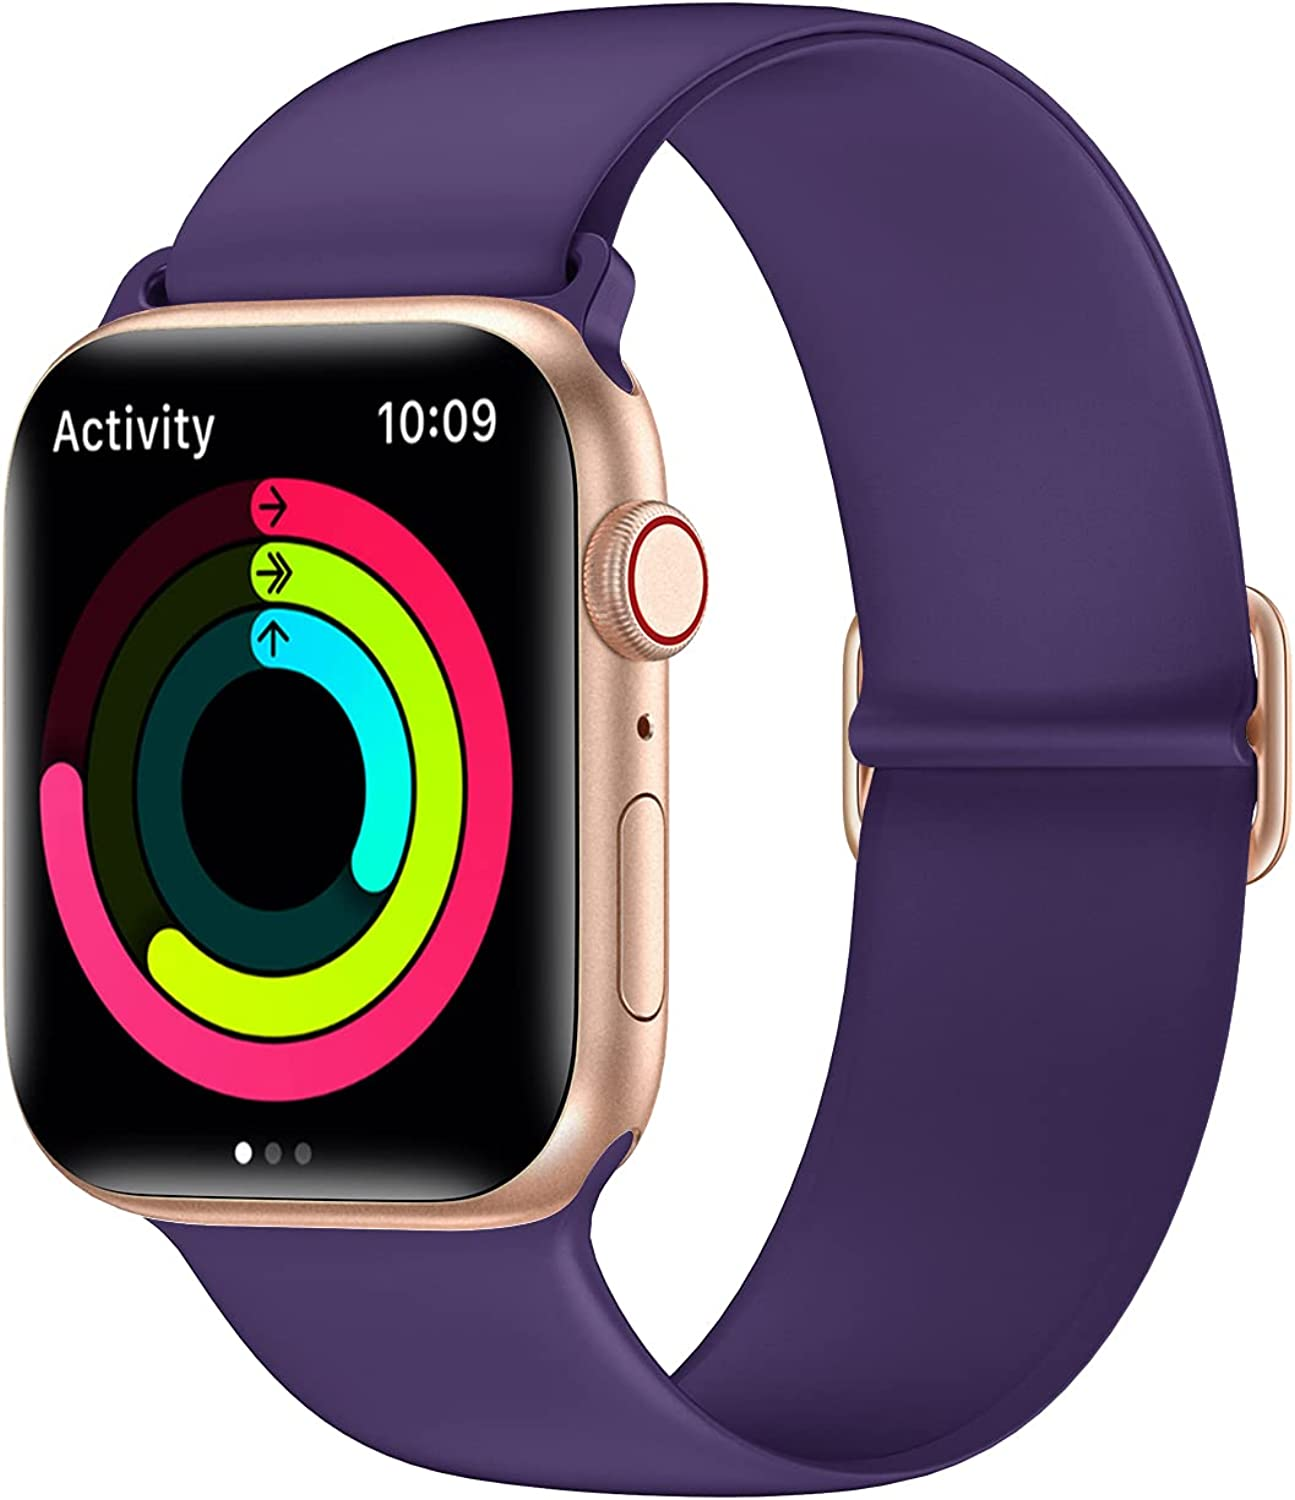 AMANECER Liquid Silicone Watch Bands Compatible with Apple Watch Series 6/5/4/3/2/1 SE, Adjustable Stretchable Sport Loop Bands for iWatch Women Men